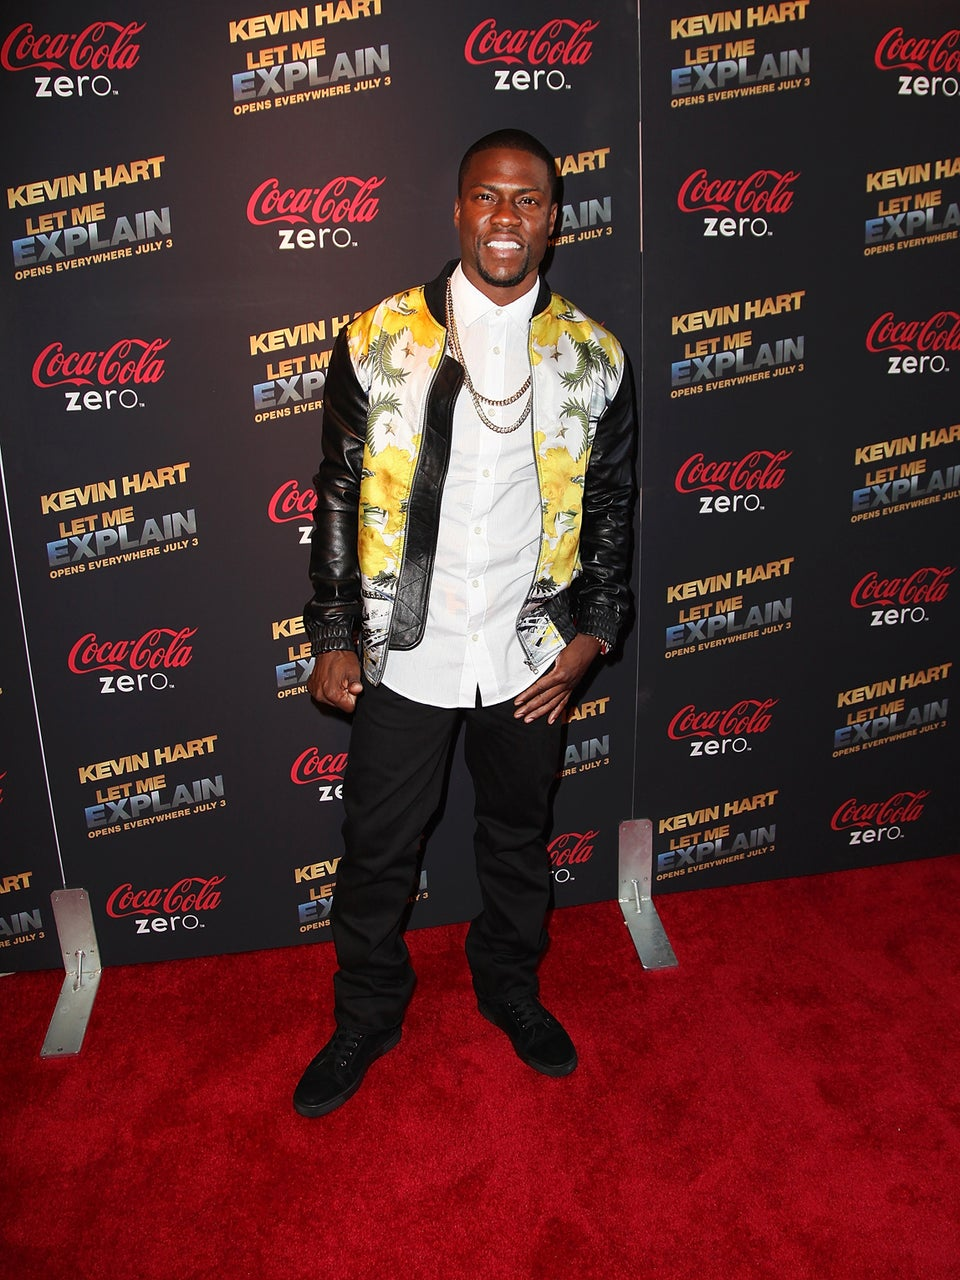 Coffee Talk: Kevin Hart Added to New Chris Rock Comedy